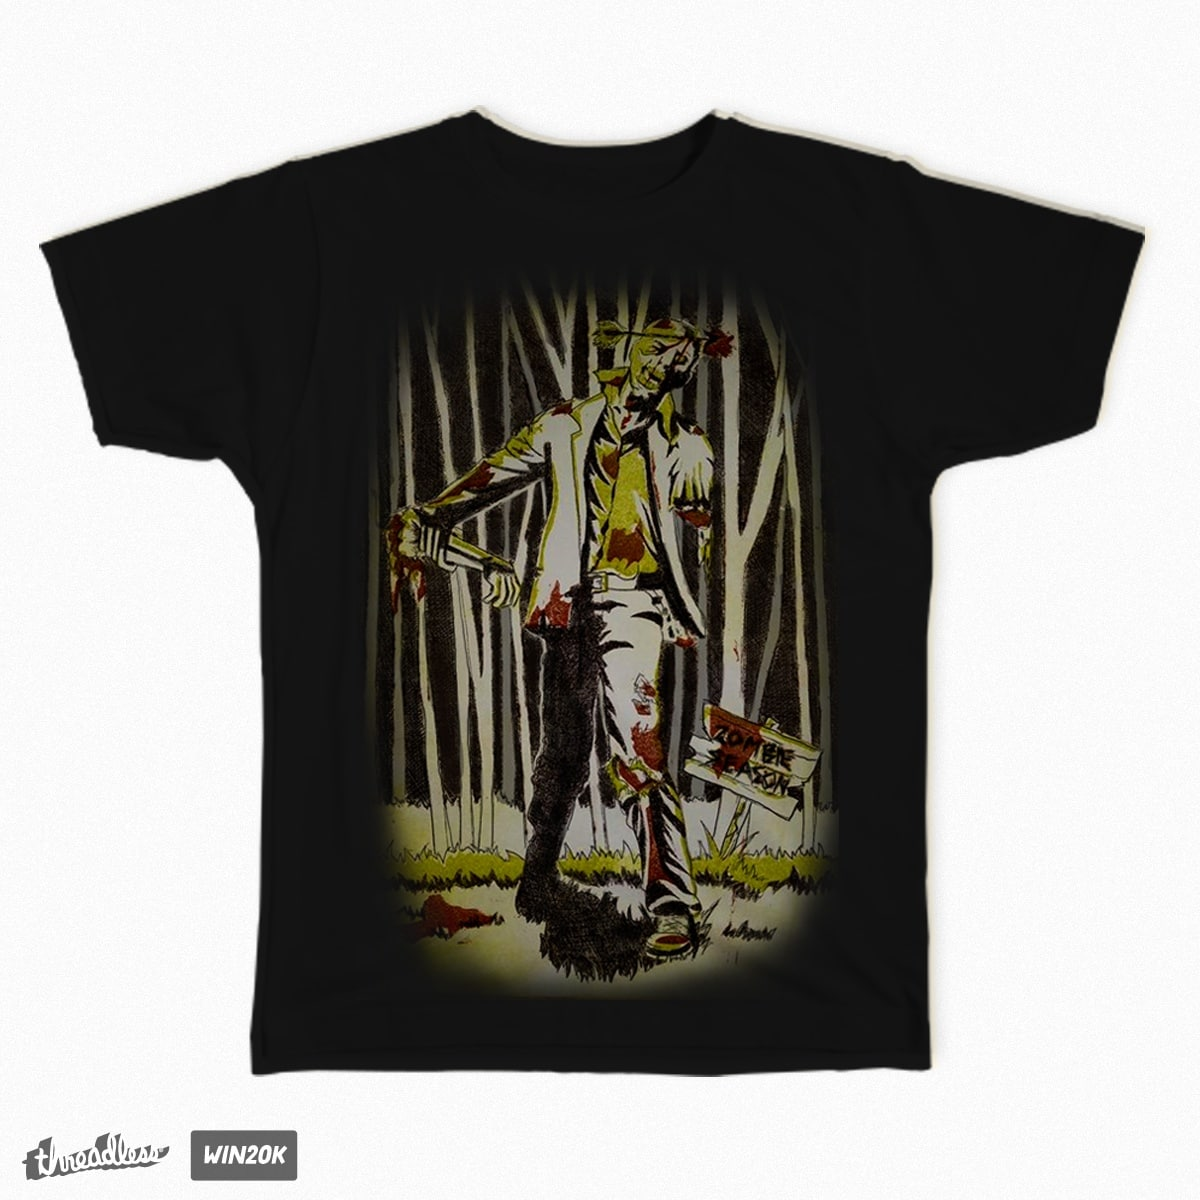 Zombie Season by jlsherer on Threadless